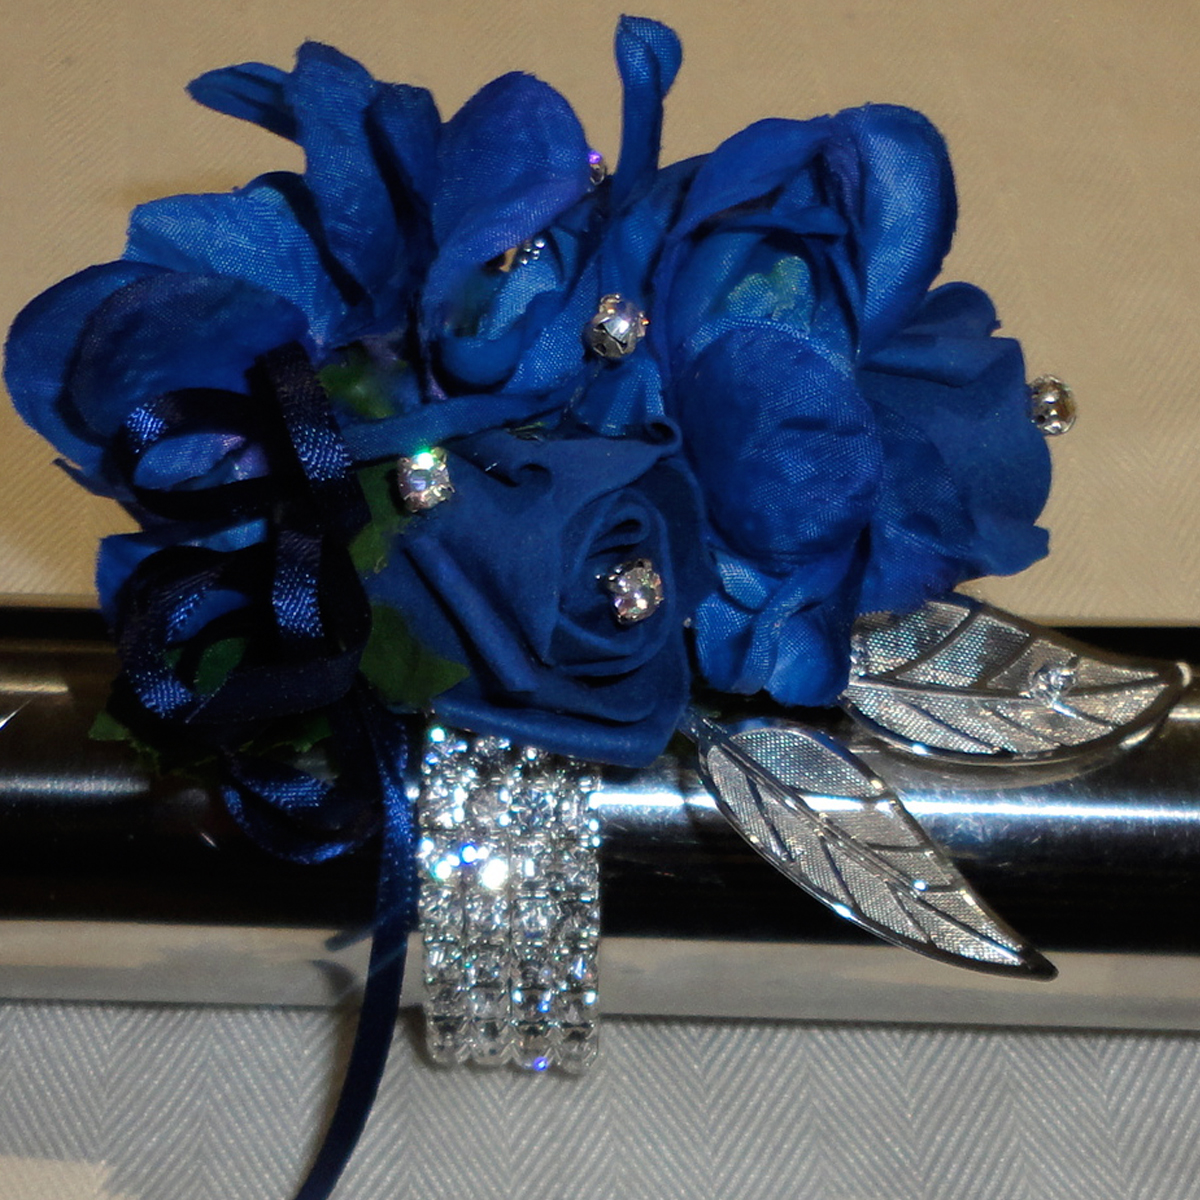 Midnight/LightNavy Blue Wrist Corsage